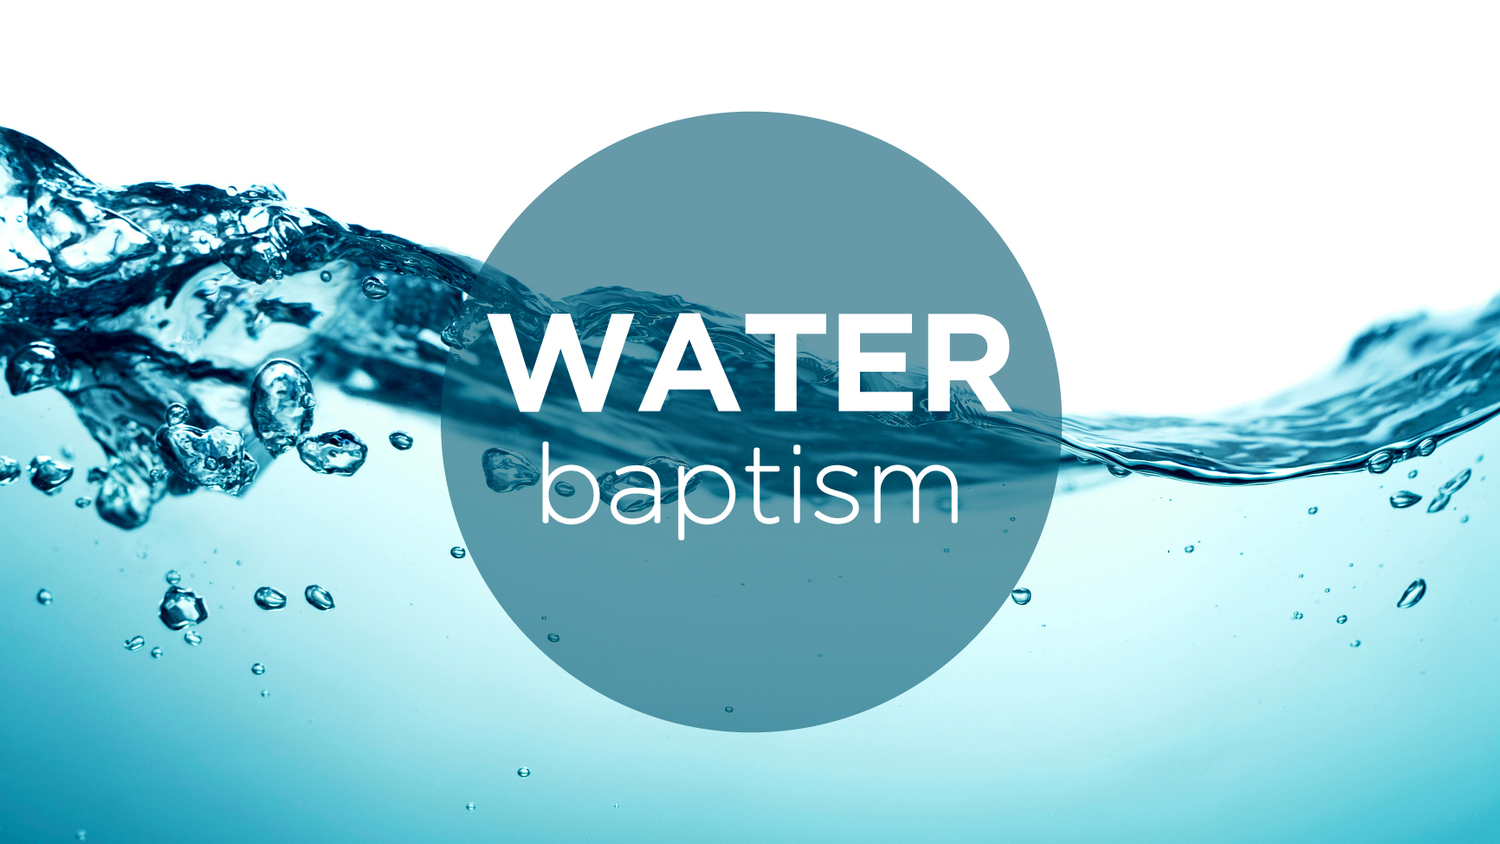 New water baptism banner